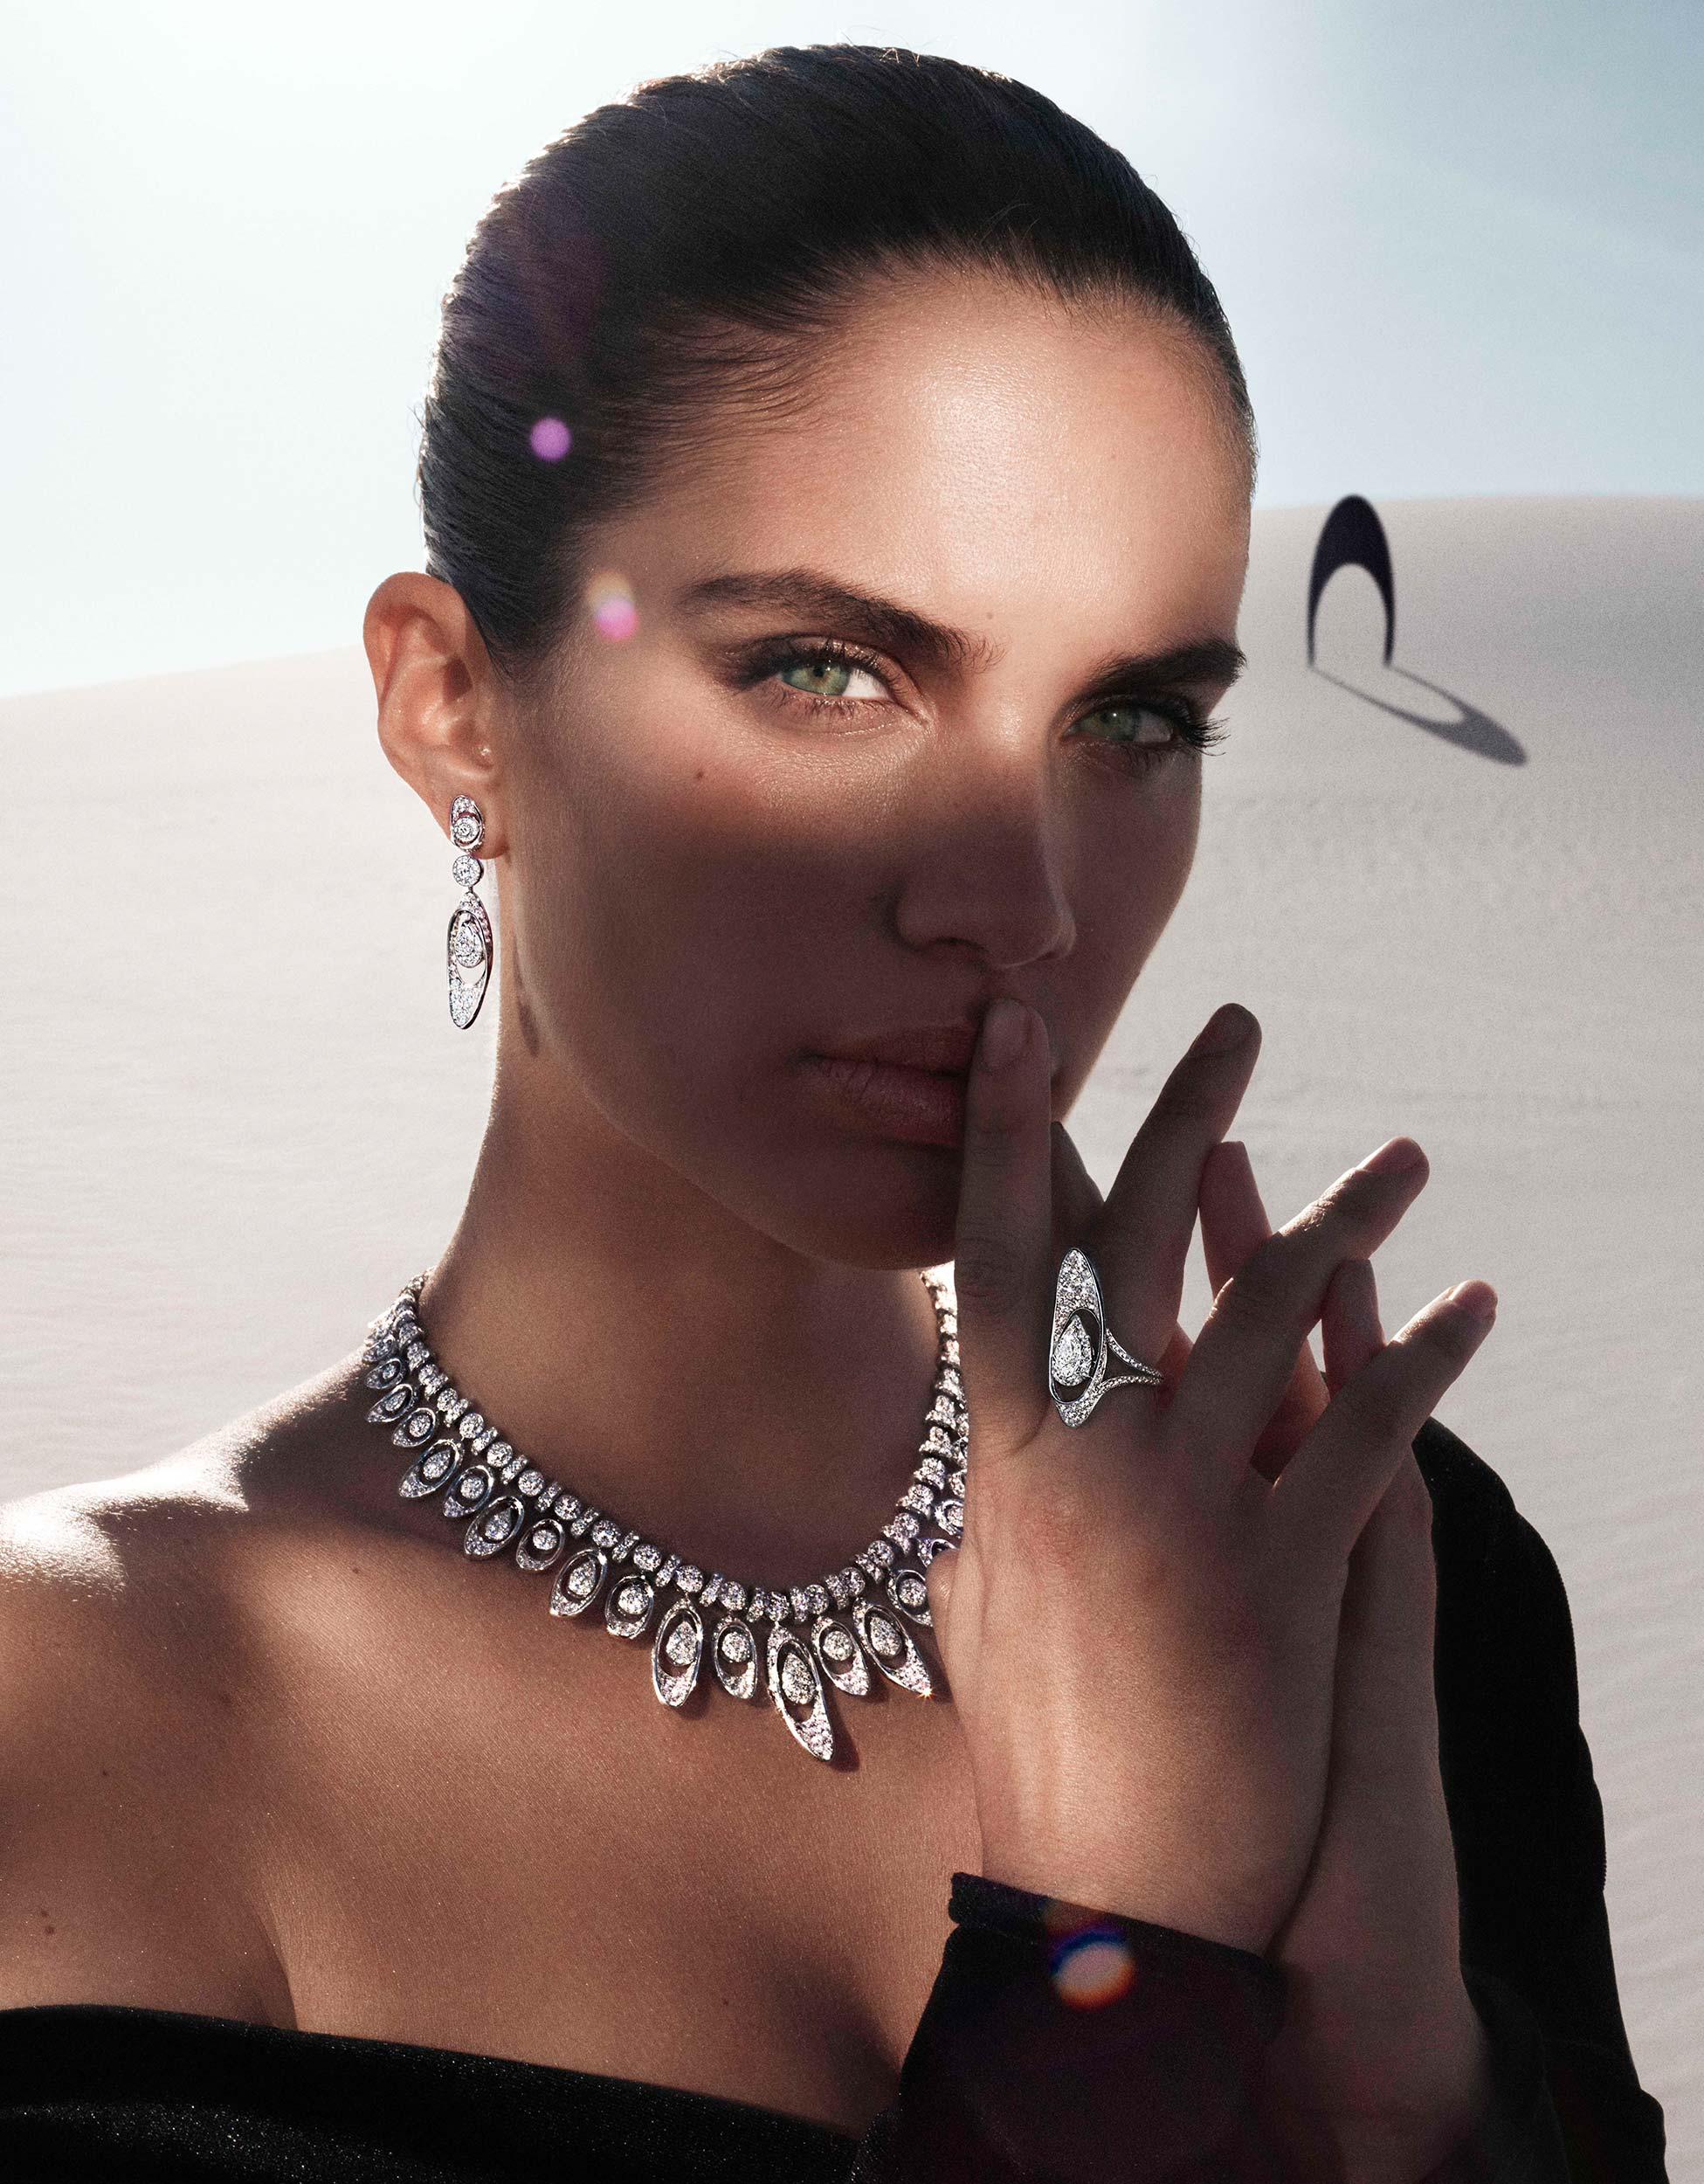 Model wears Graff Gateway diamond jewels from the Tribal collection